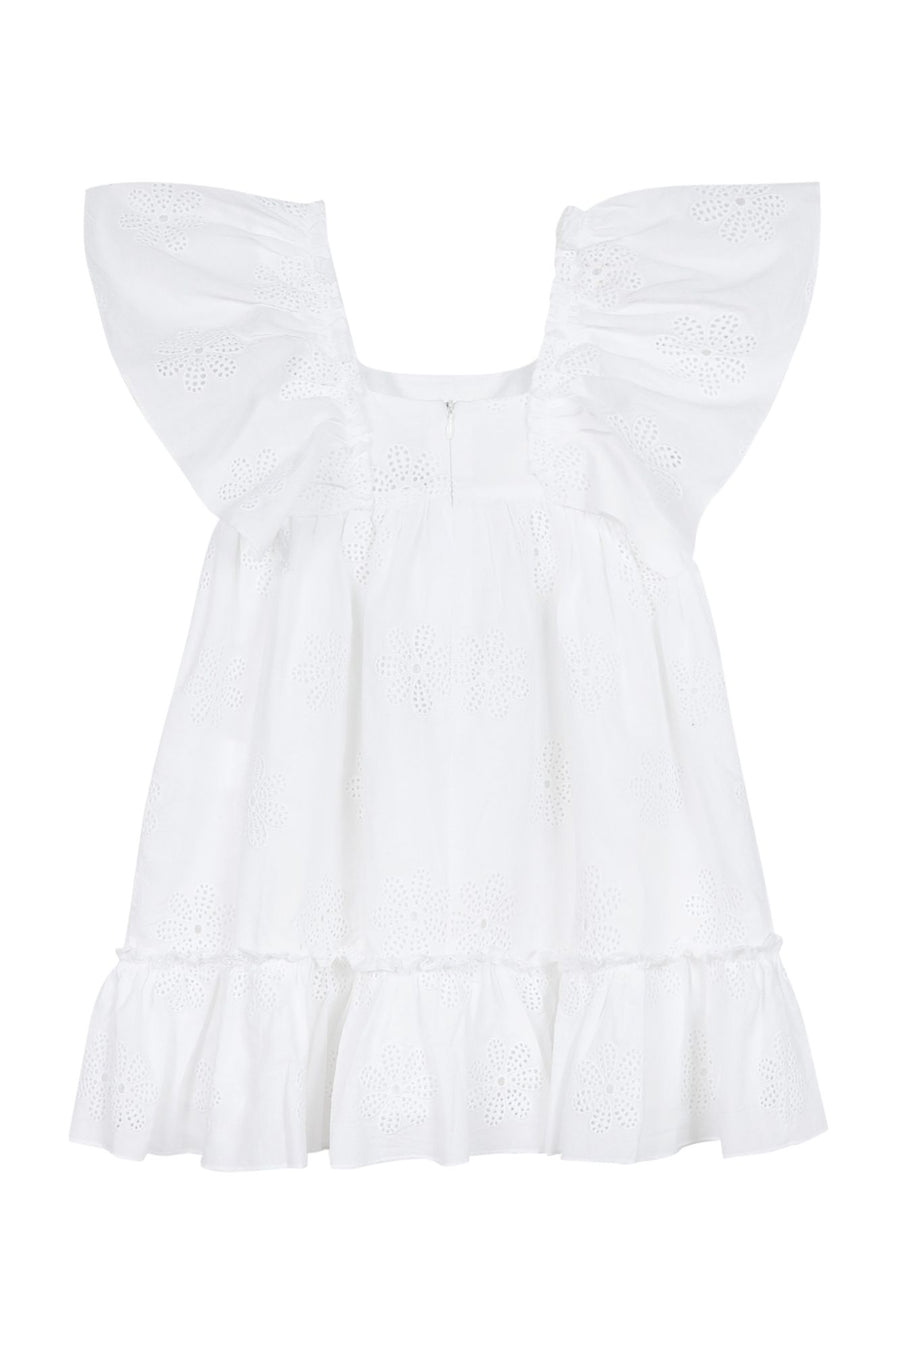 Blanc Dress by Tartine et Chocolat